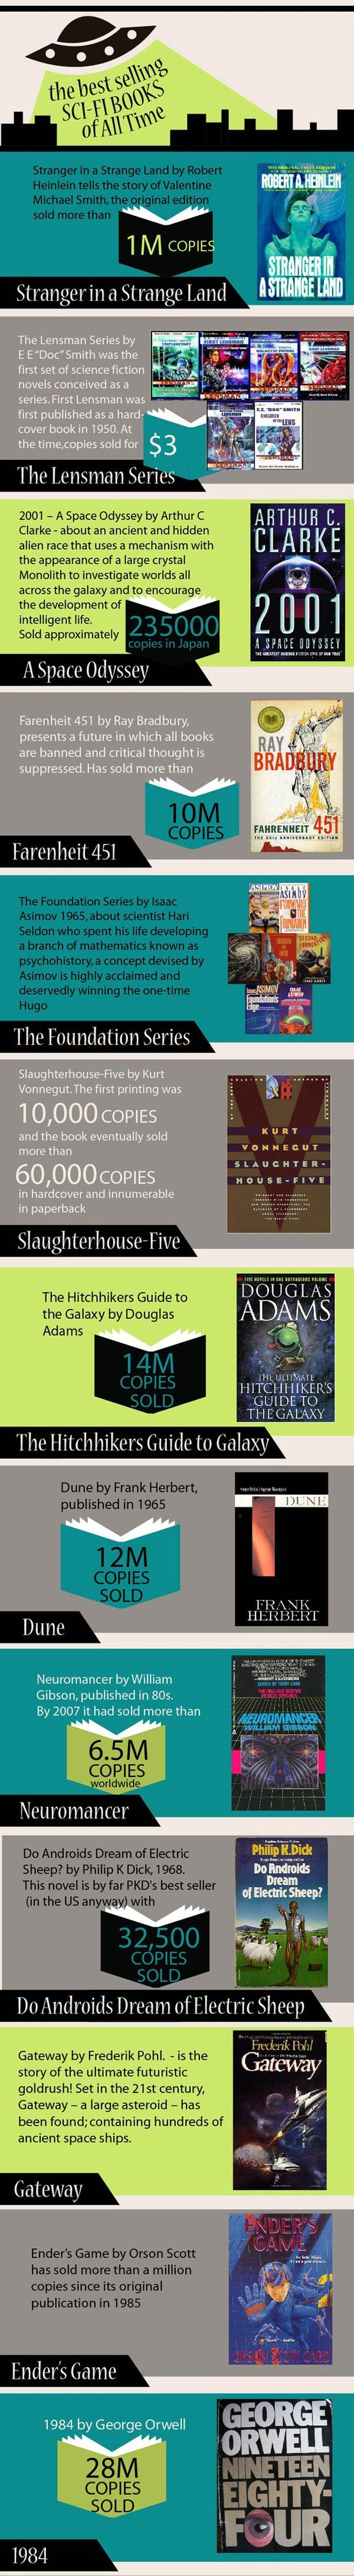 Awesome Infographic: The Best-Selling Sci-Fi Books of All